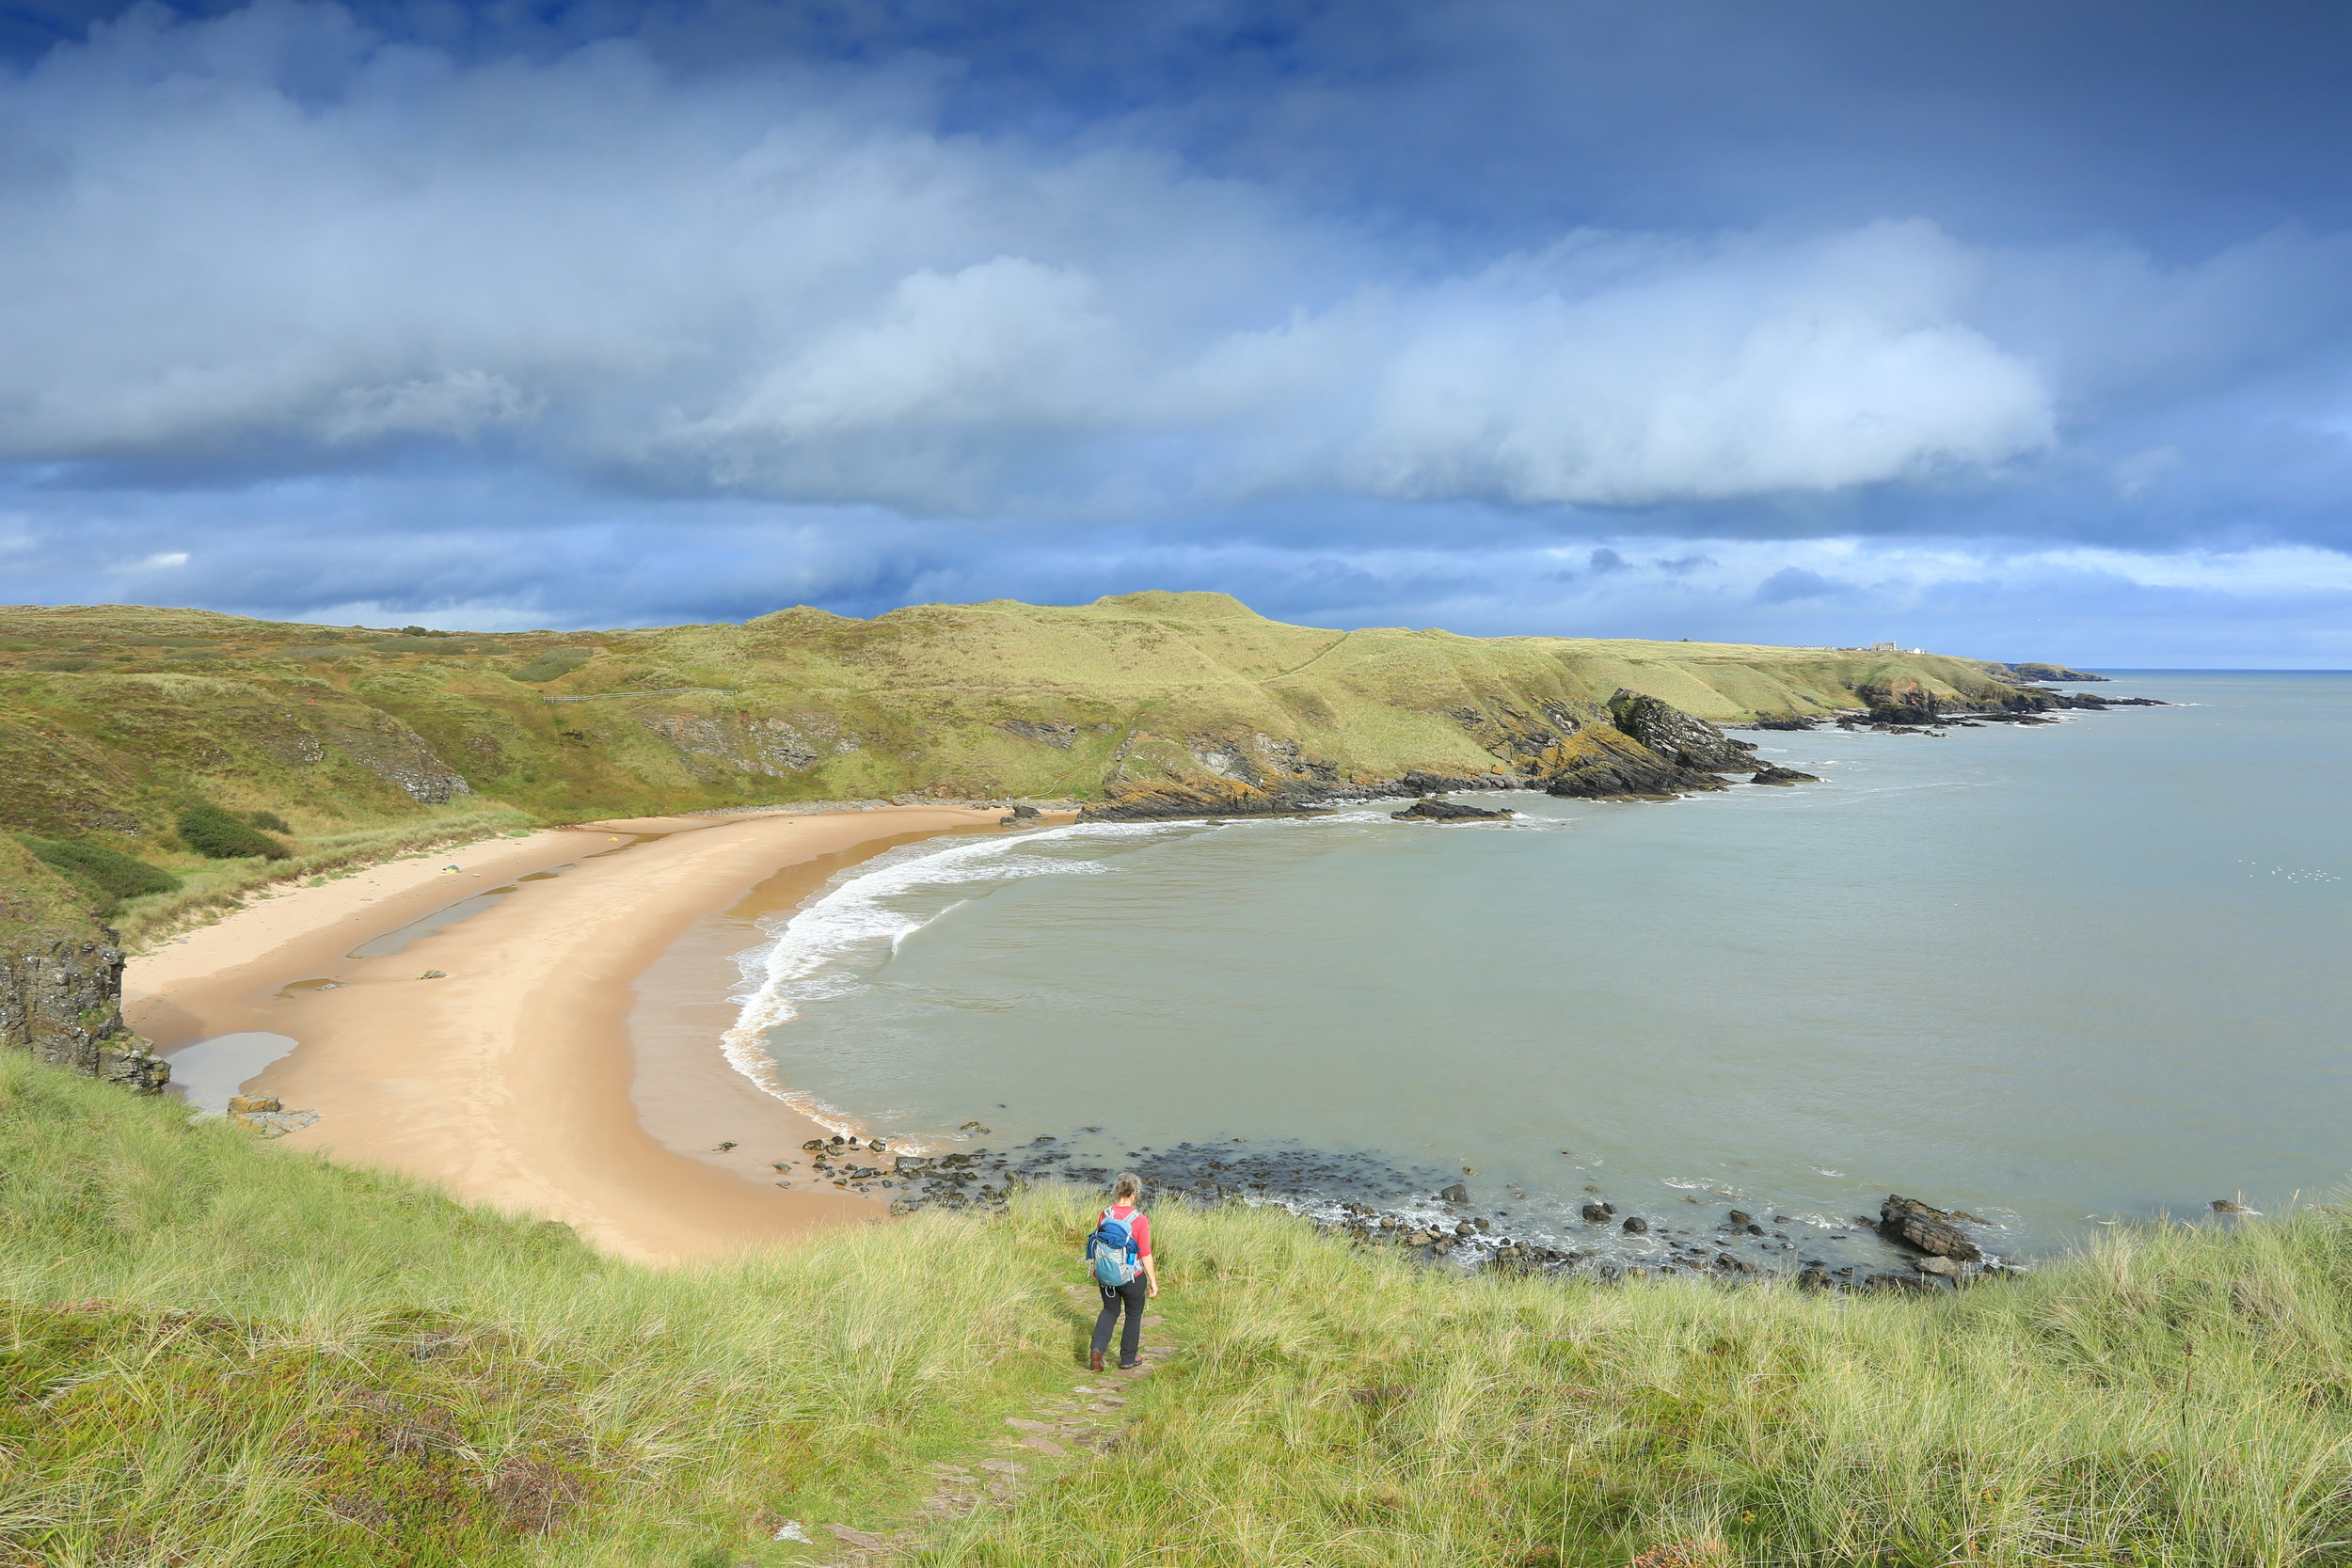 275 Hackley Bay Forvie NNR South of Little ColliestonEast Scotland.jpg